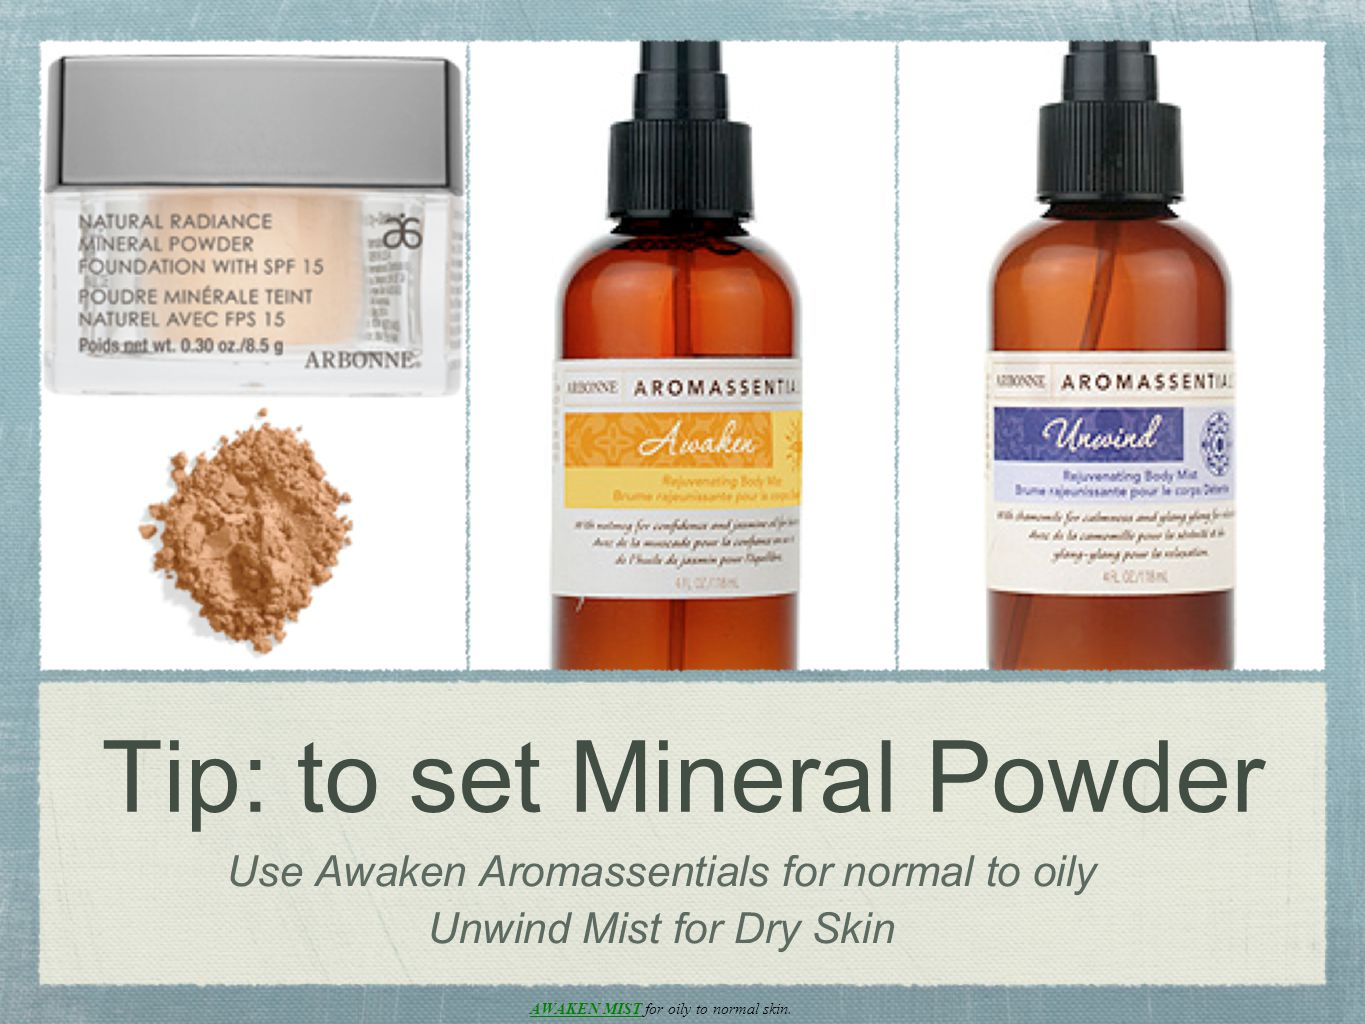 Tip: to set Mineral Powder